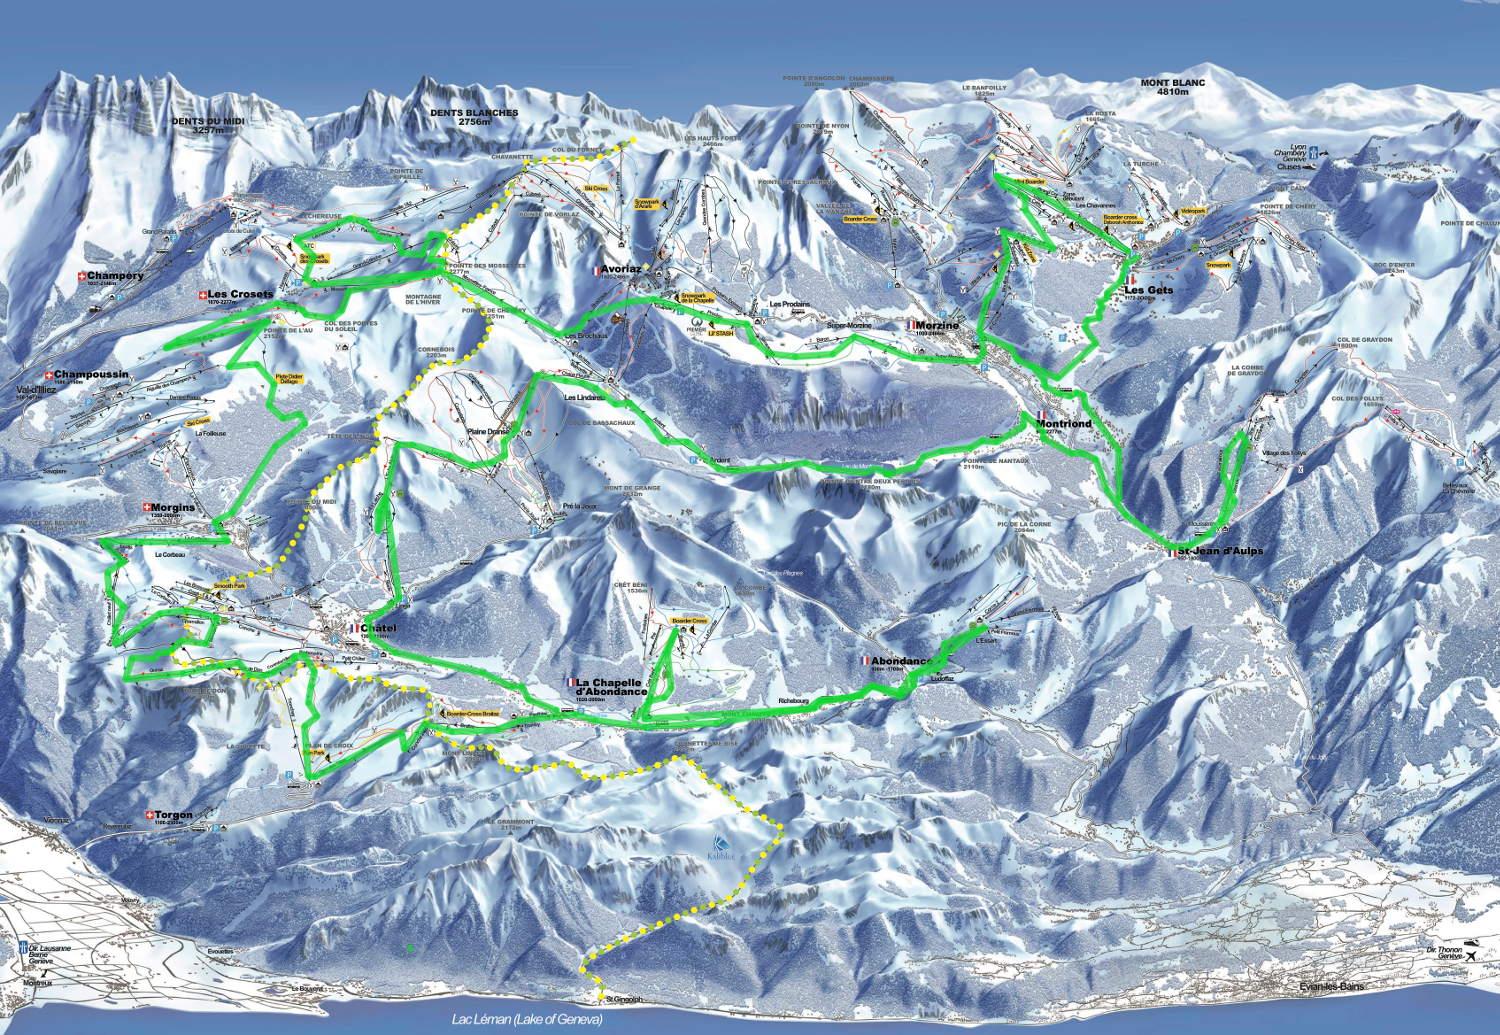 I reckon there's a chance (although the stars will have to align) and this is the plan for next time we attempt the tour of the Portes du Soleil. Source: http://en.portesdusoleil.com/winter/ski-map.html